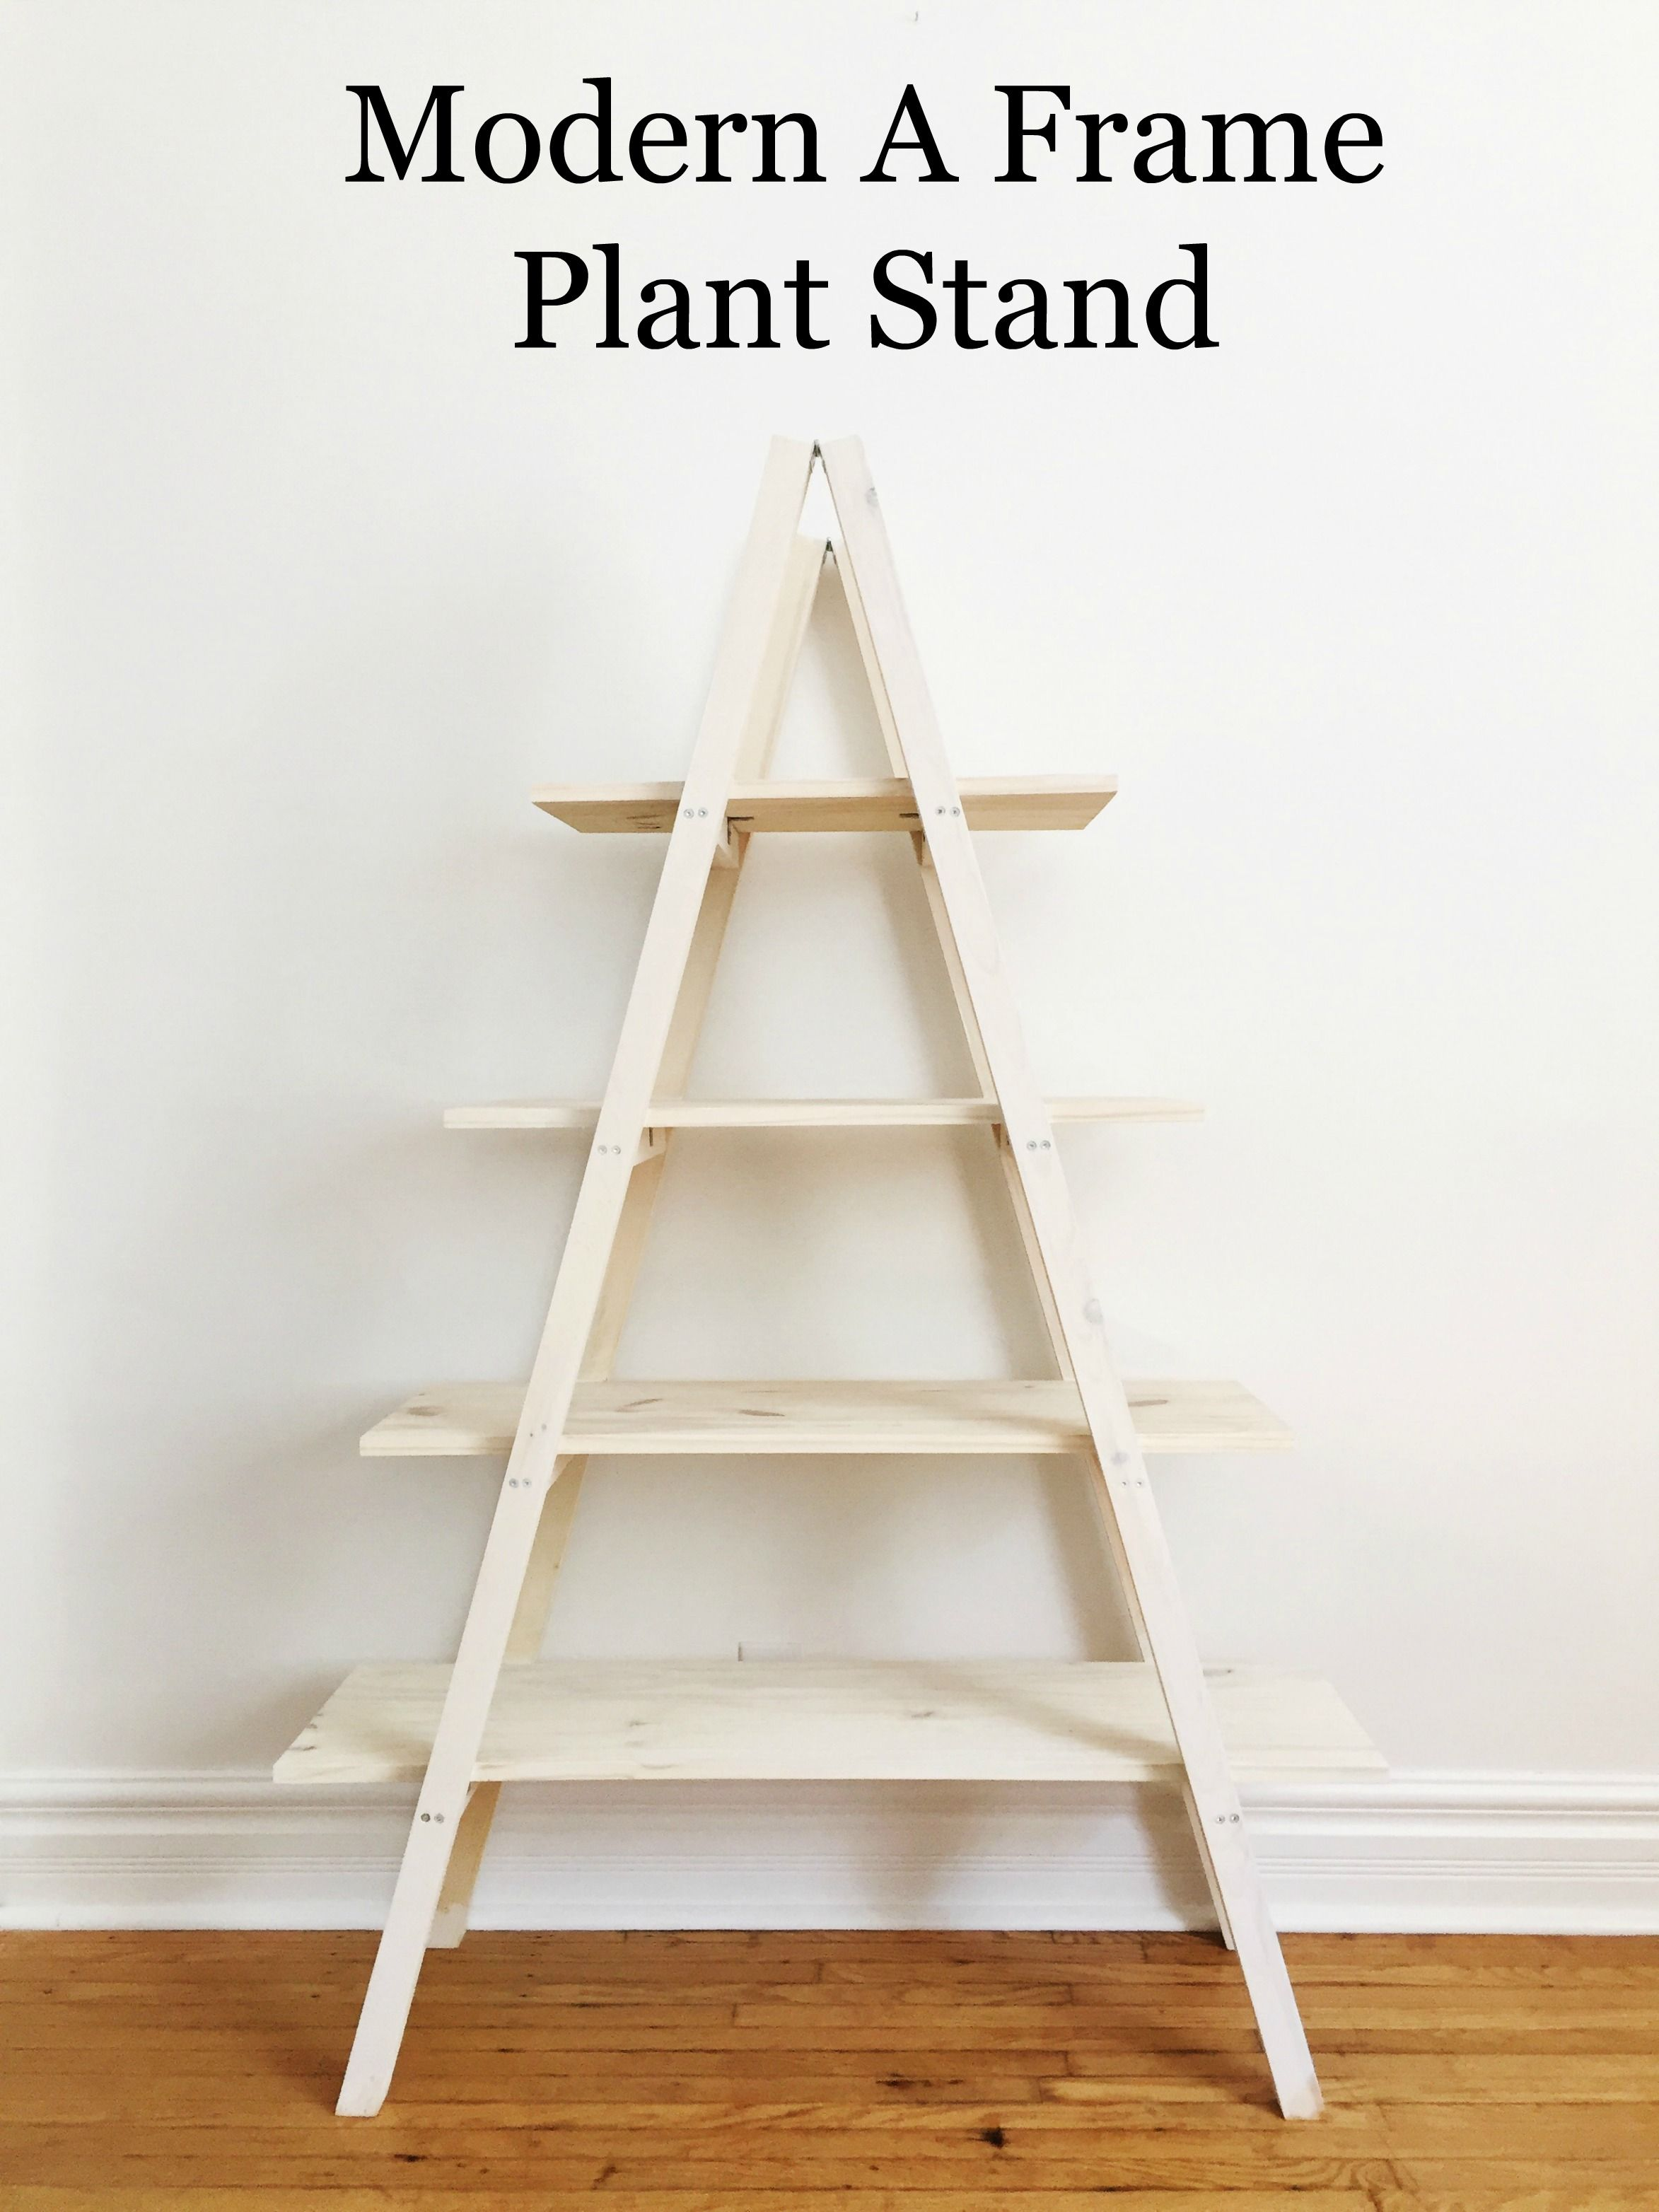 Modern A Frame Plant Stand | Flowers | Pinterest | Plants, DIY and ...